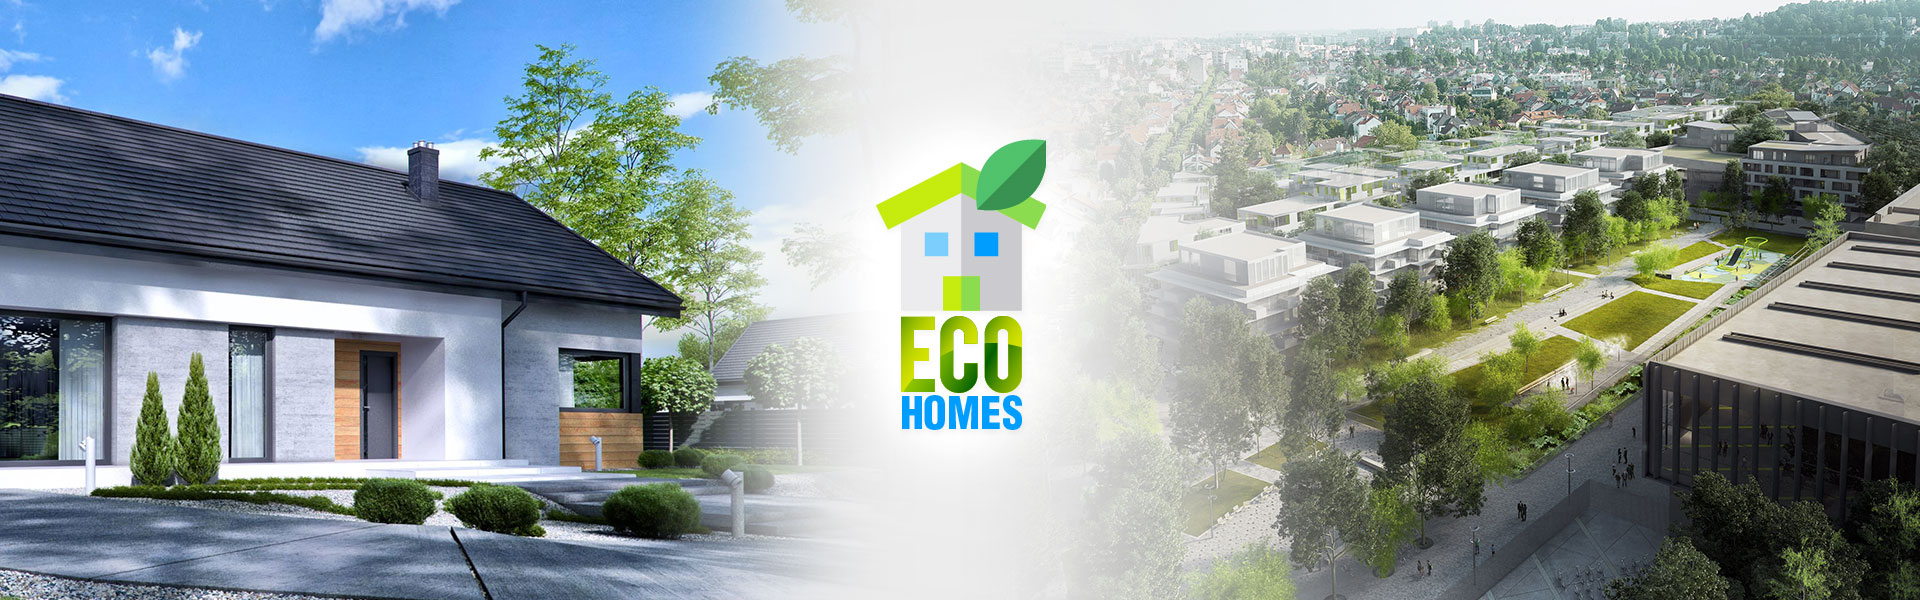 Eco Homes Bruxelles